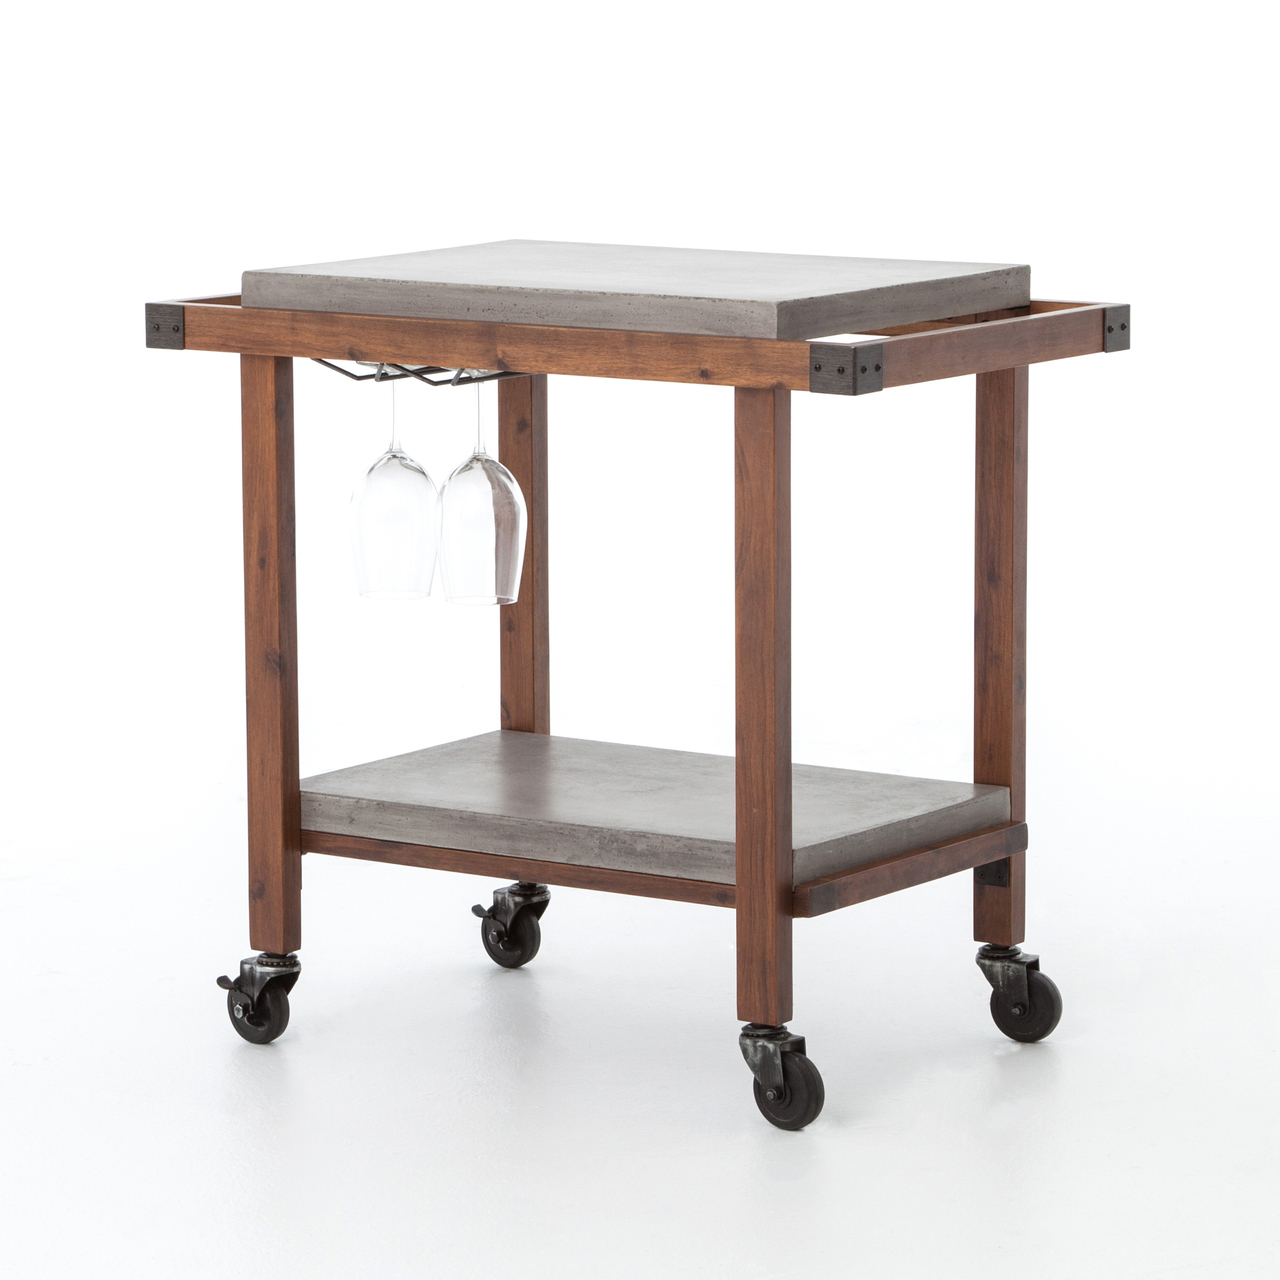 knox bar cart with concrete top zin home vevr prm accent table ethan allen coffee glass bedside lockers west elm urban sectional mahogany tables nautical furniture standard lamps